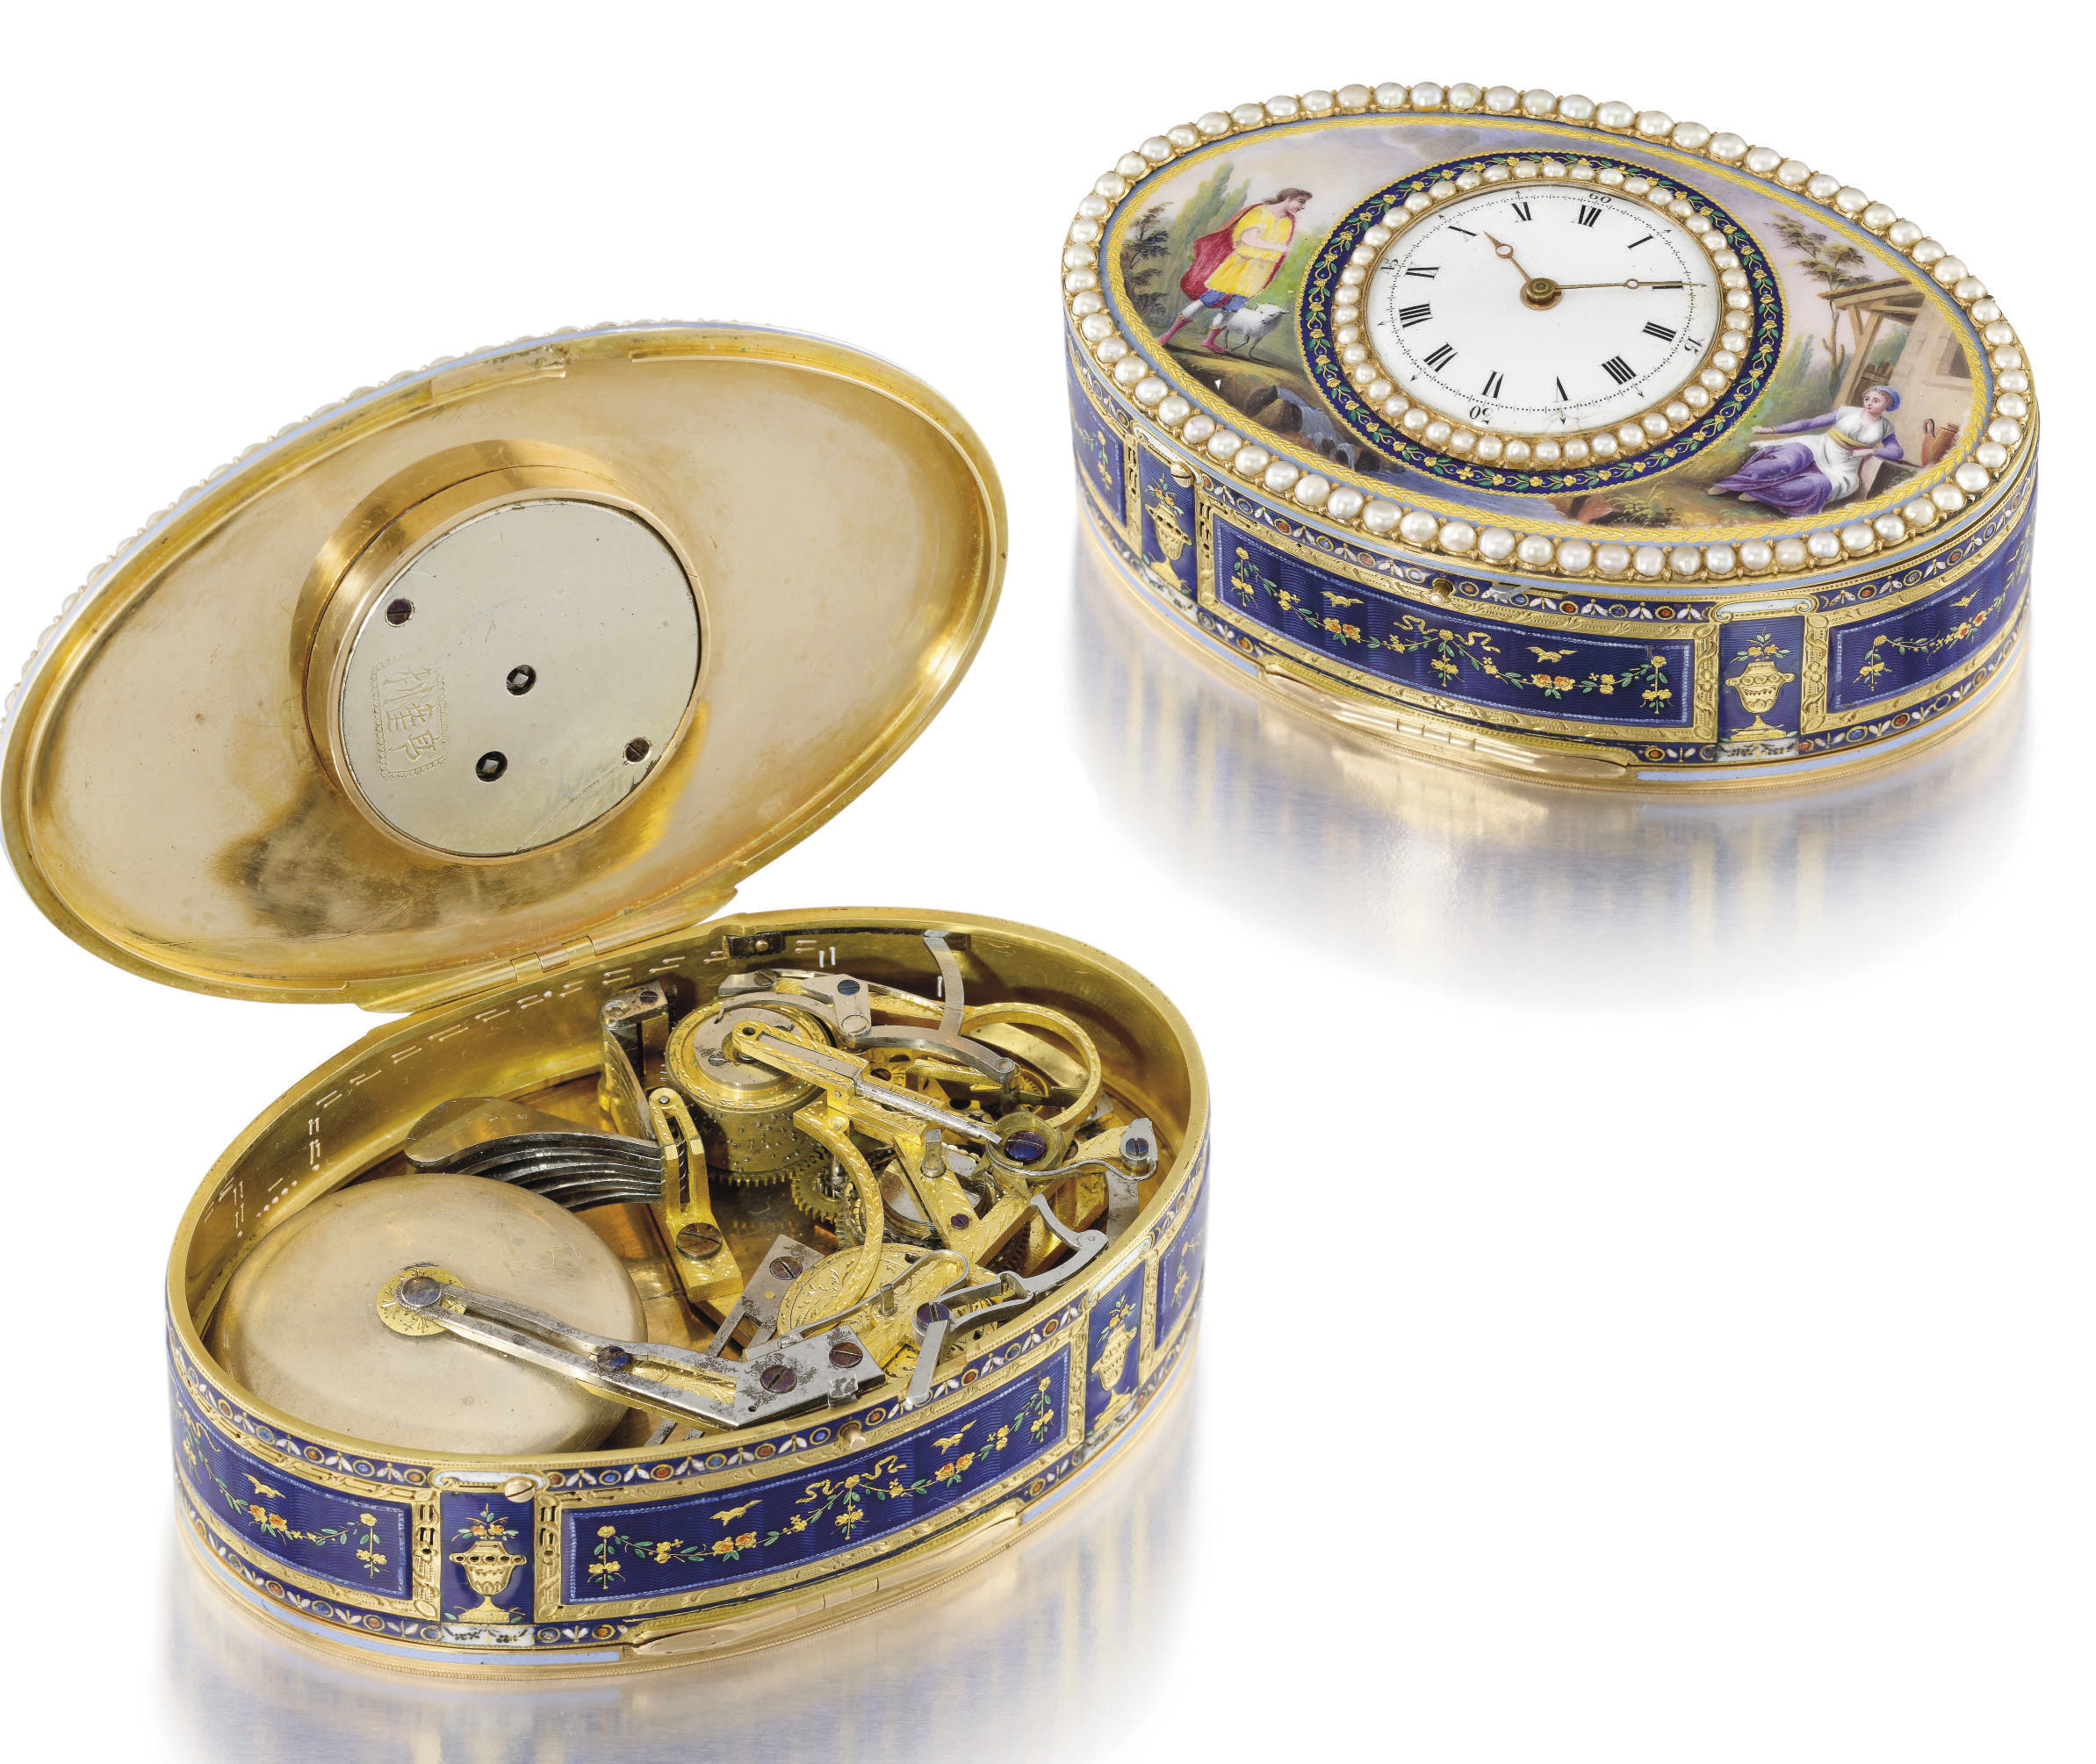 Swiss, attributed to Jaquet Dr